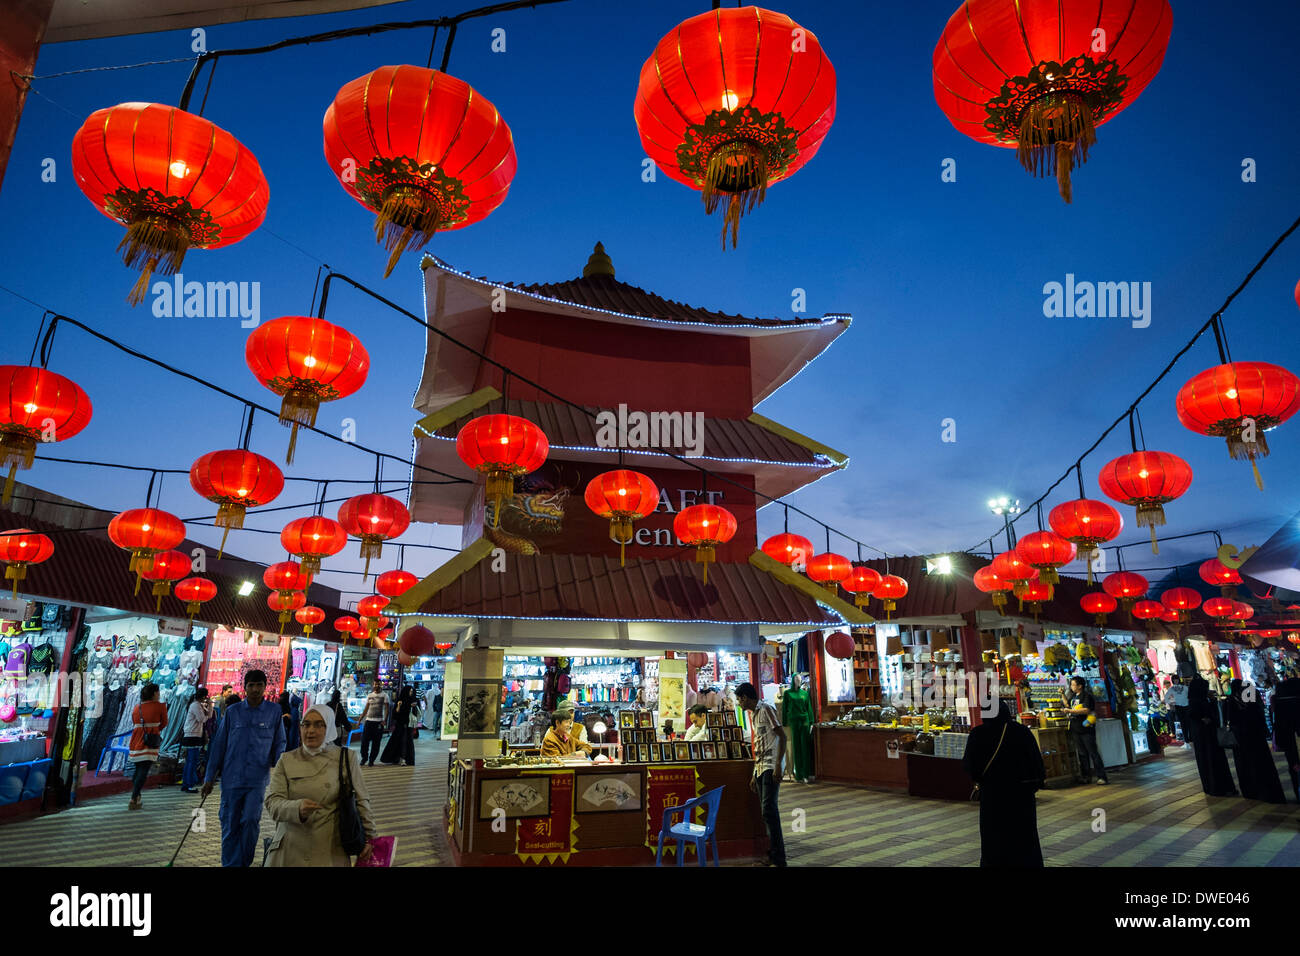 China pavilion with red lanterns and shopping arcade at Global Village tourist cultural attraction in Dubai United - Stock Image